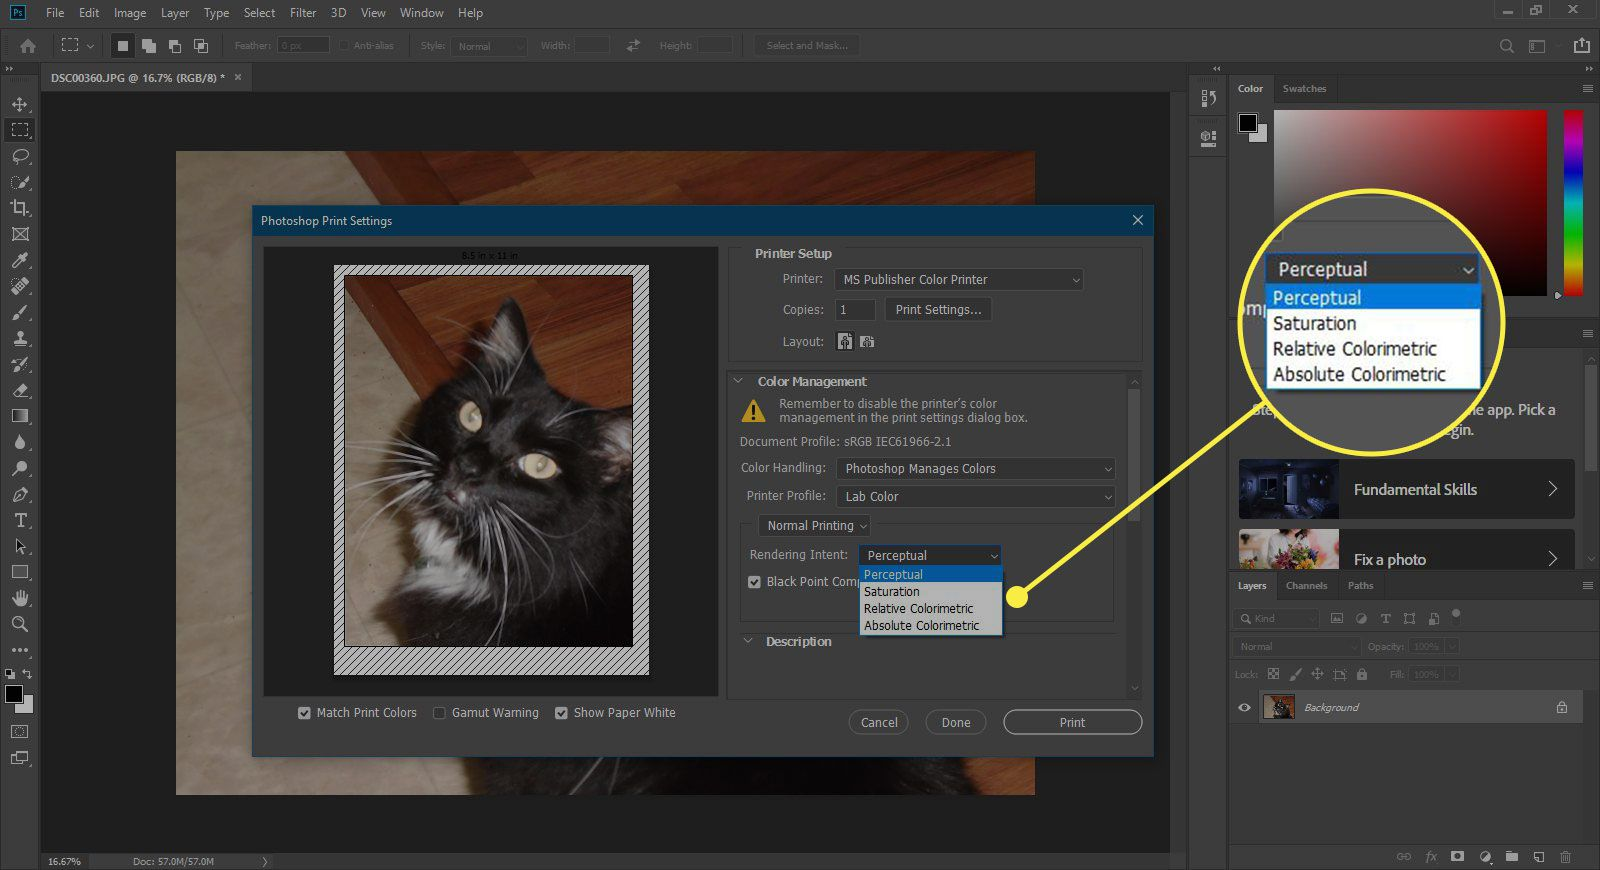 A screenshot of Photoshop's Print window with the Rendering Intent options highlighted